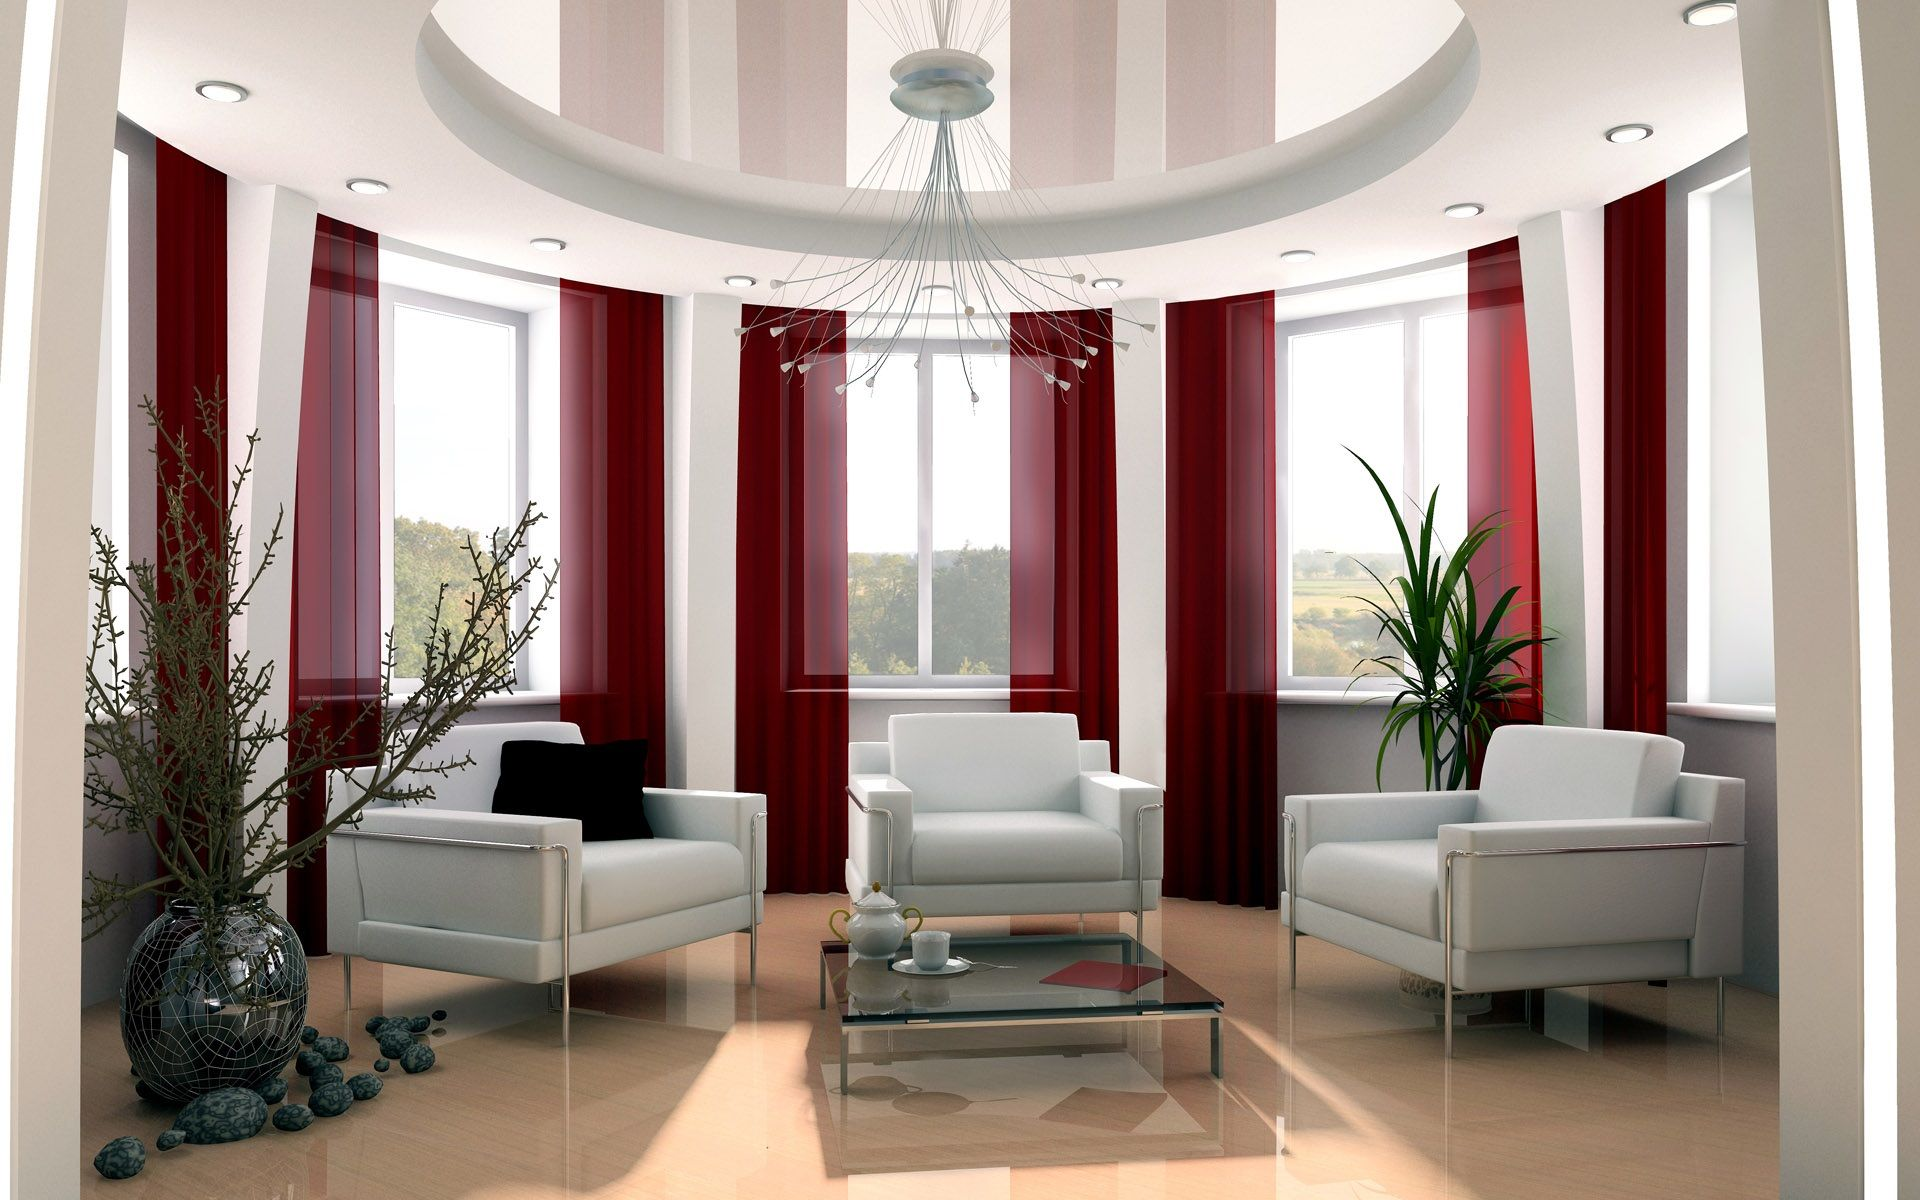 circle room perspective - Google Search | trada project | Pinterest